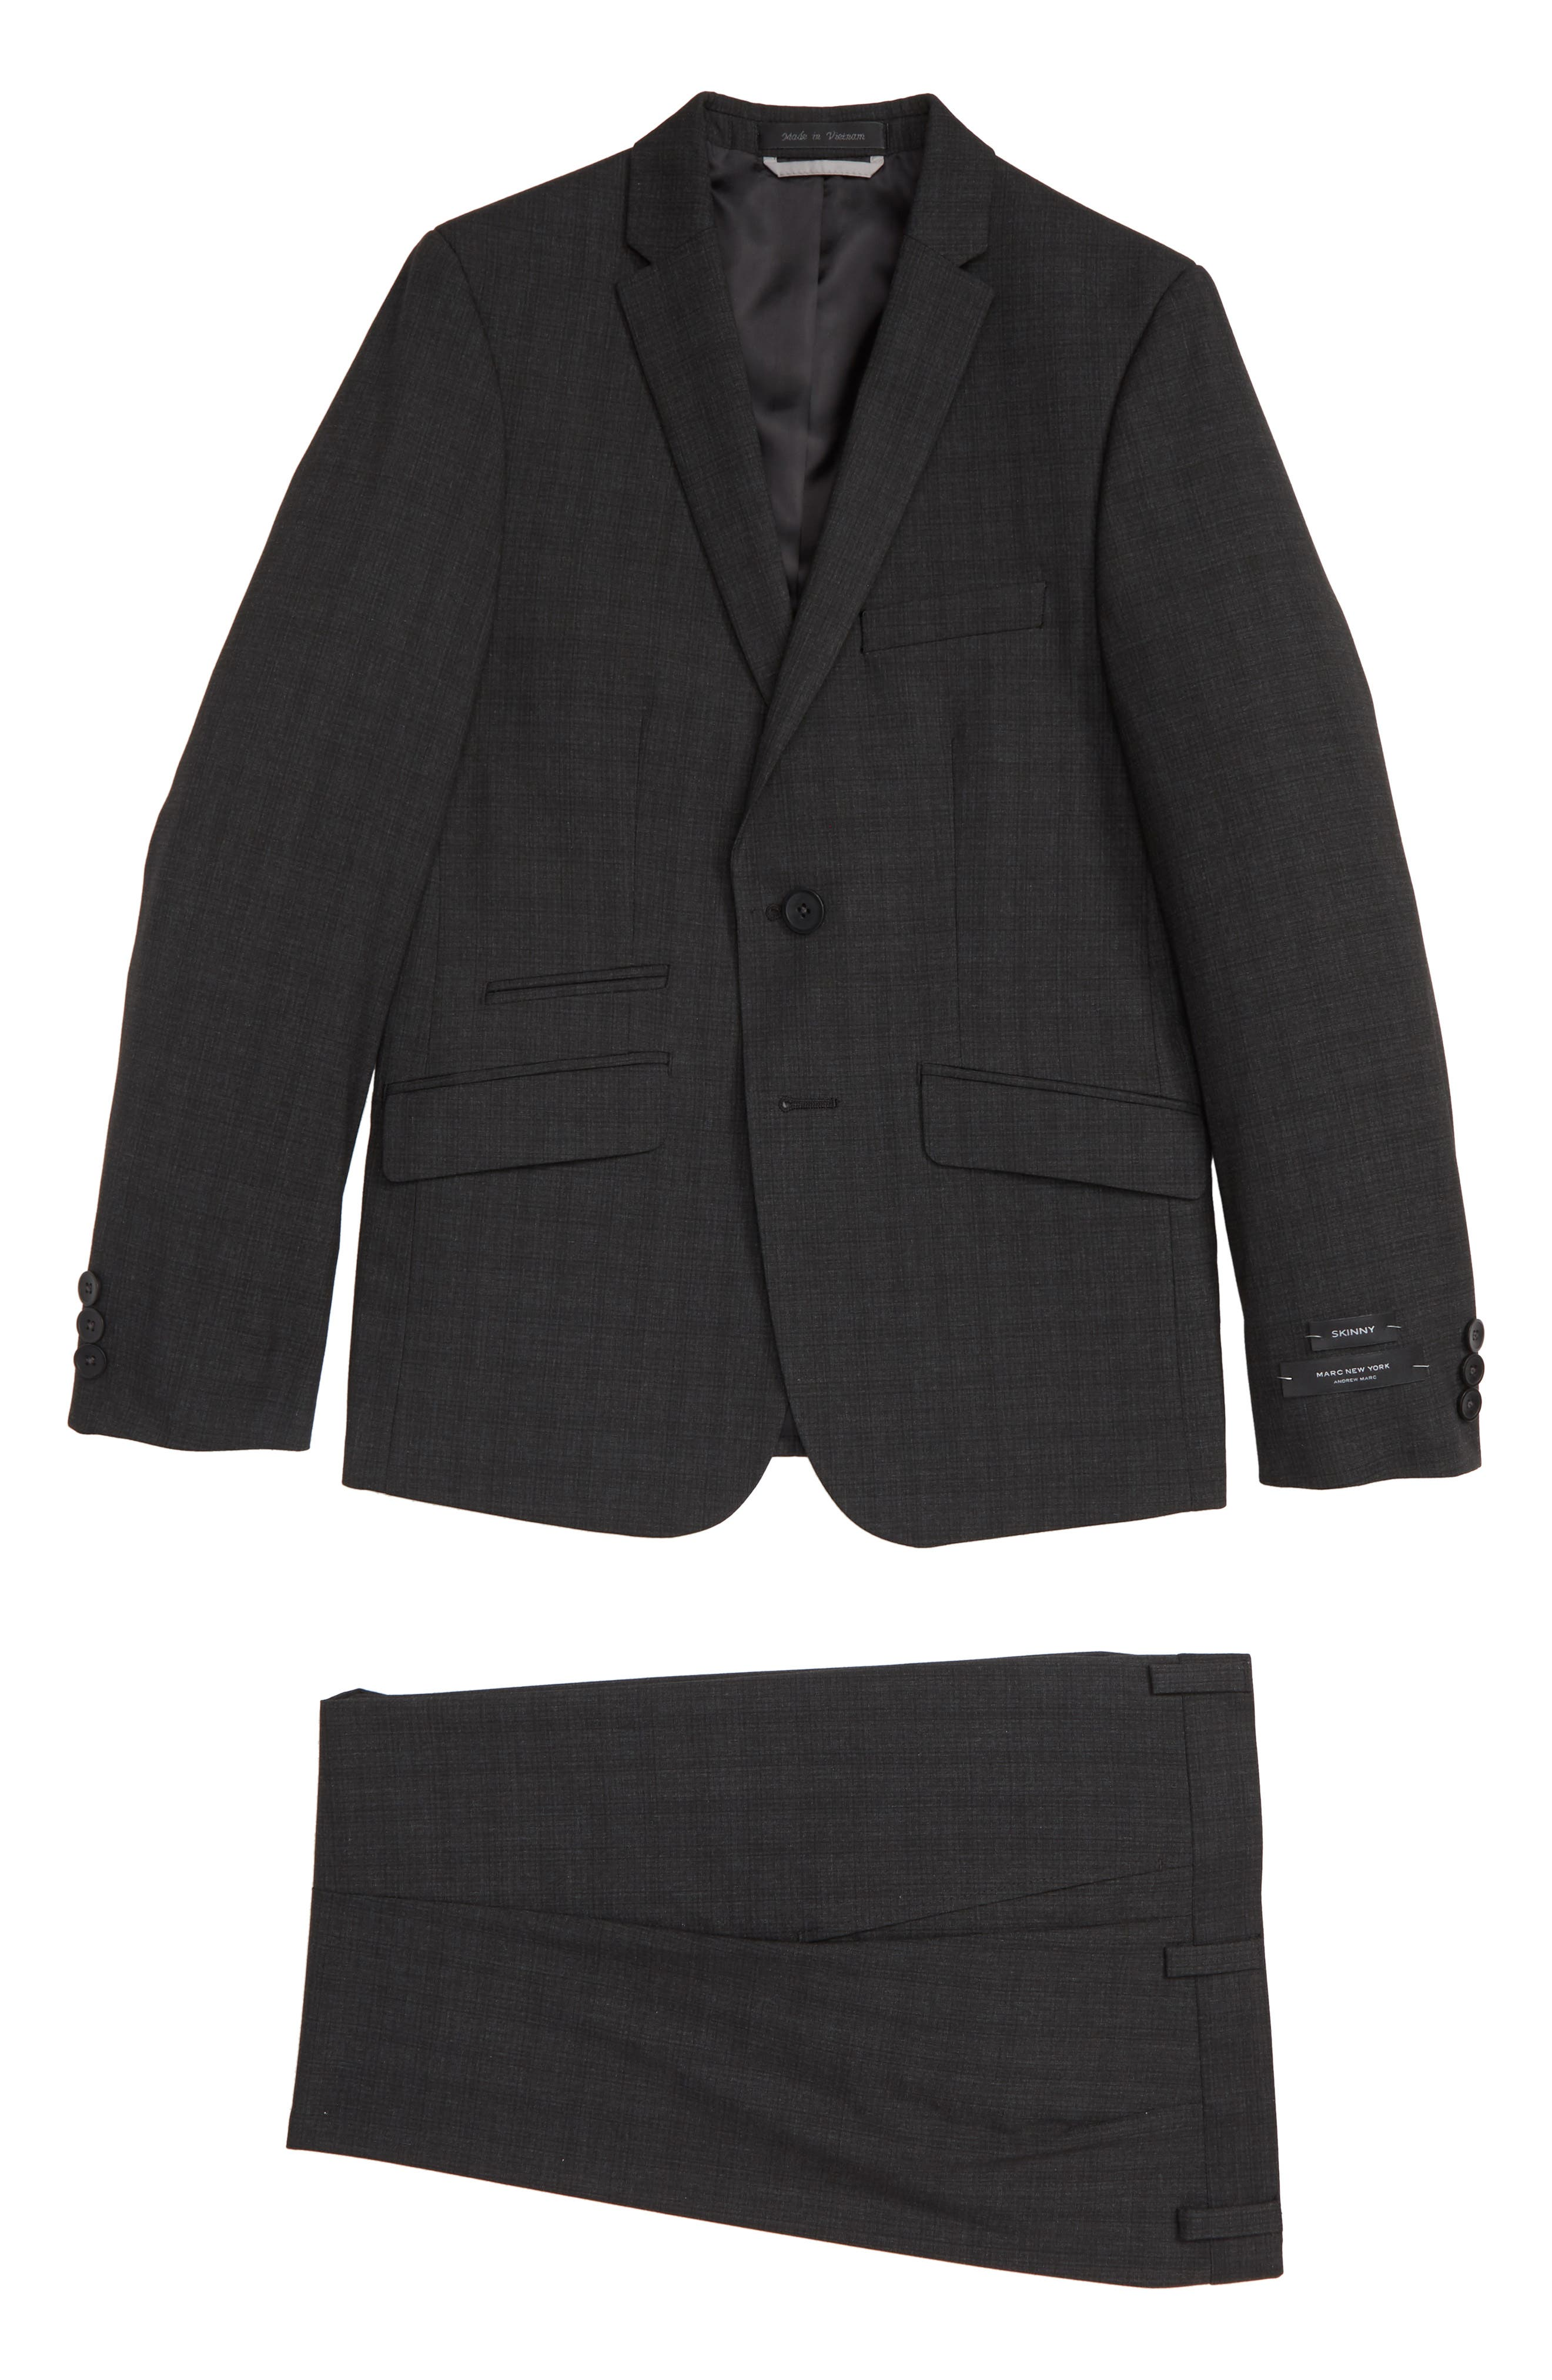 Check Suit,                         Main,                         color, CHARCOAL/ BLACK